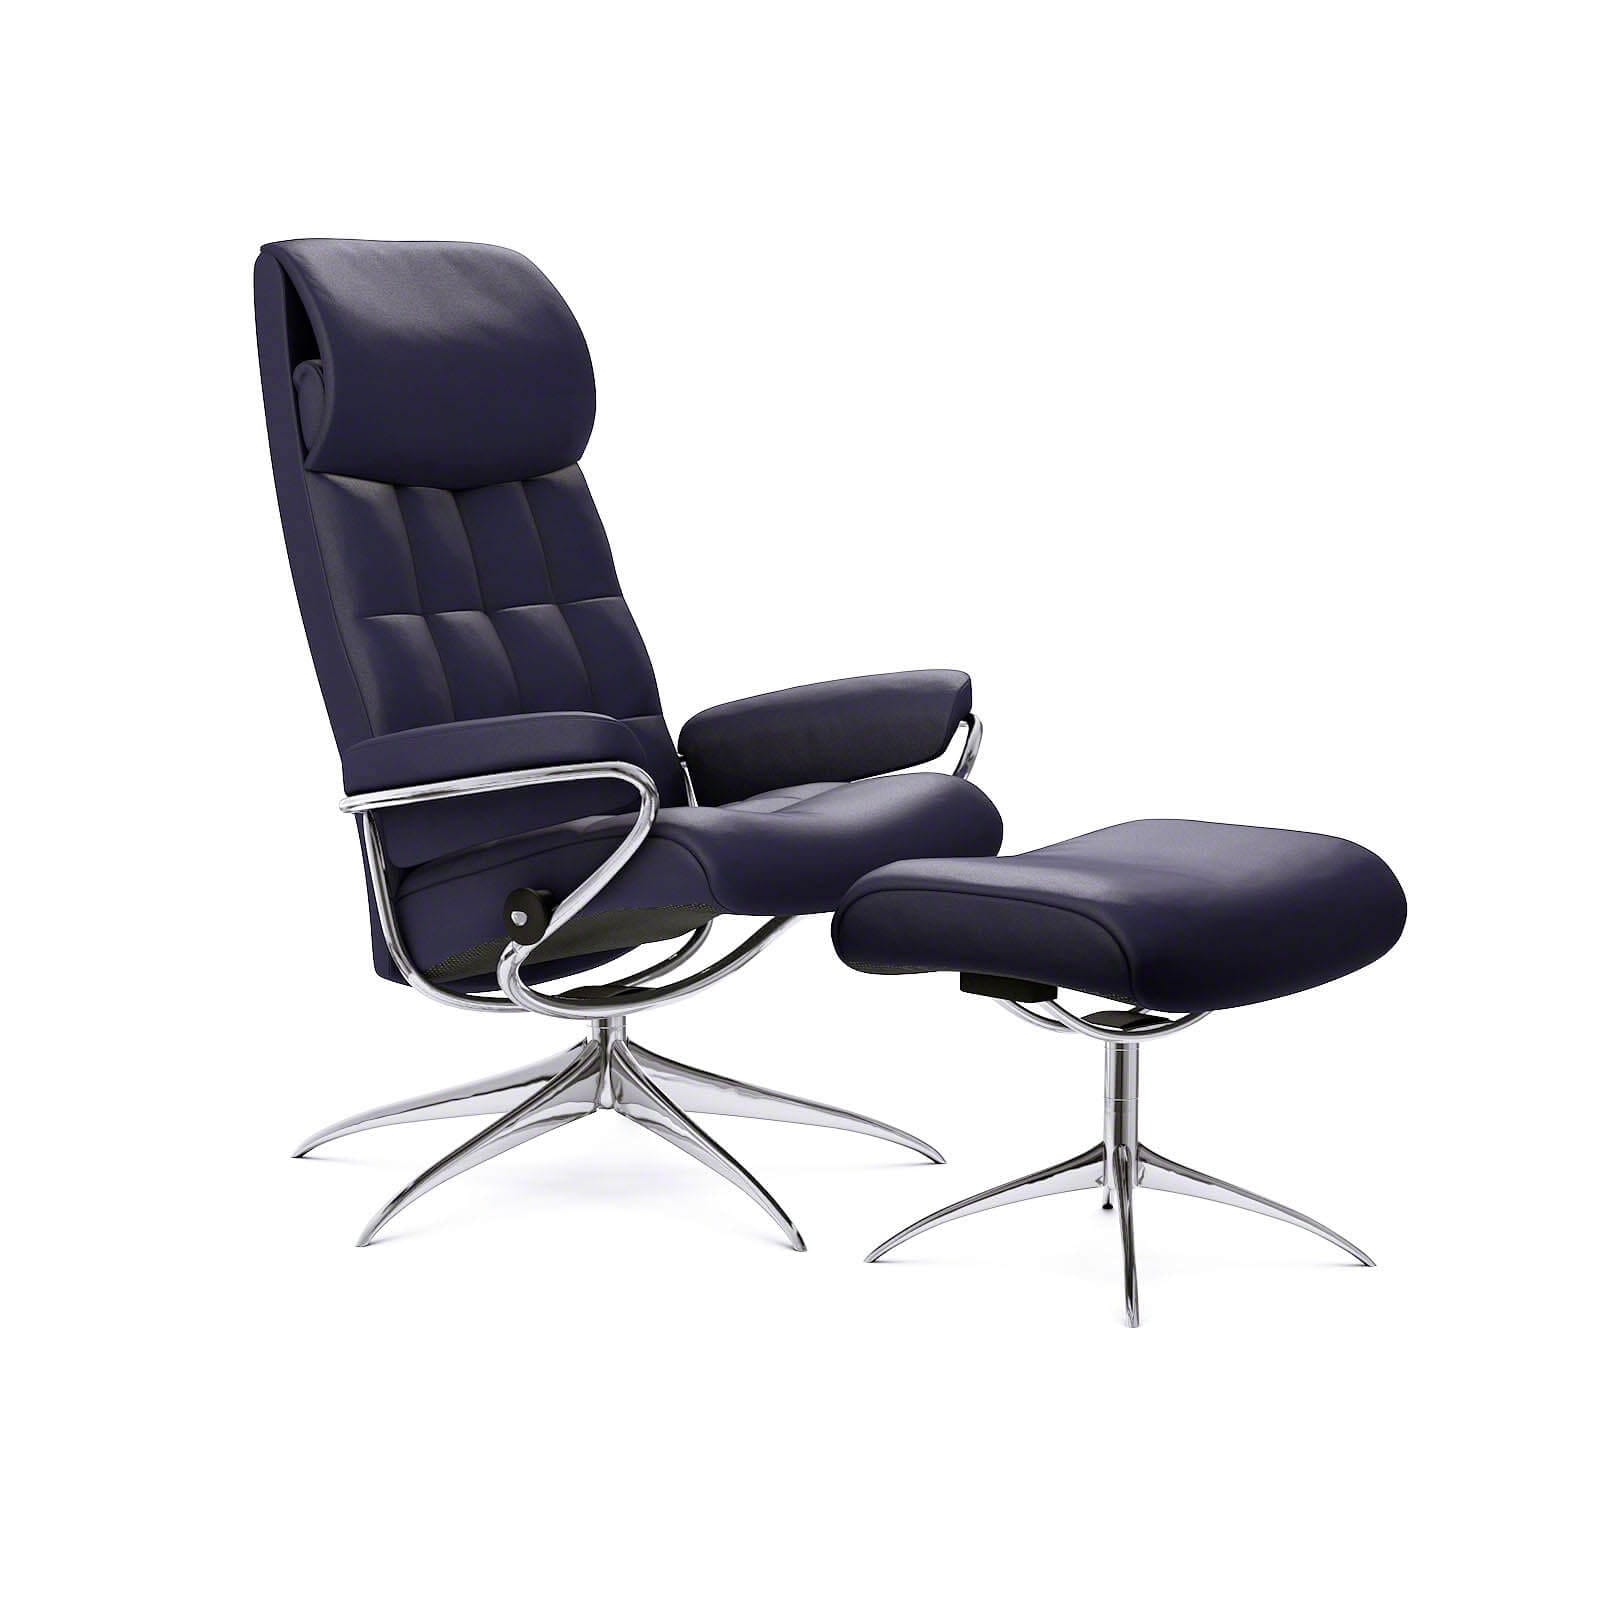 Stressless Lederfarben Stressless Sessel London Hohe Lehne Paloma Indigo